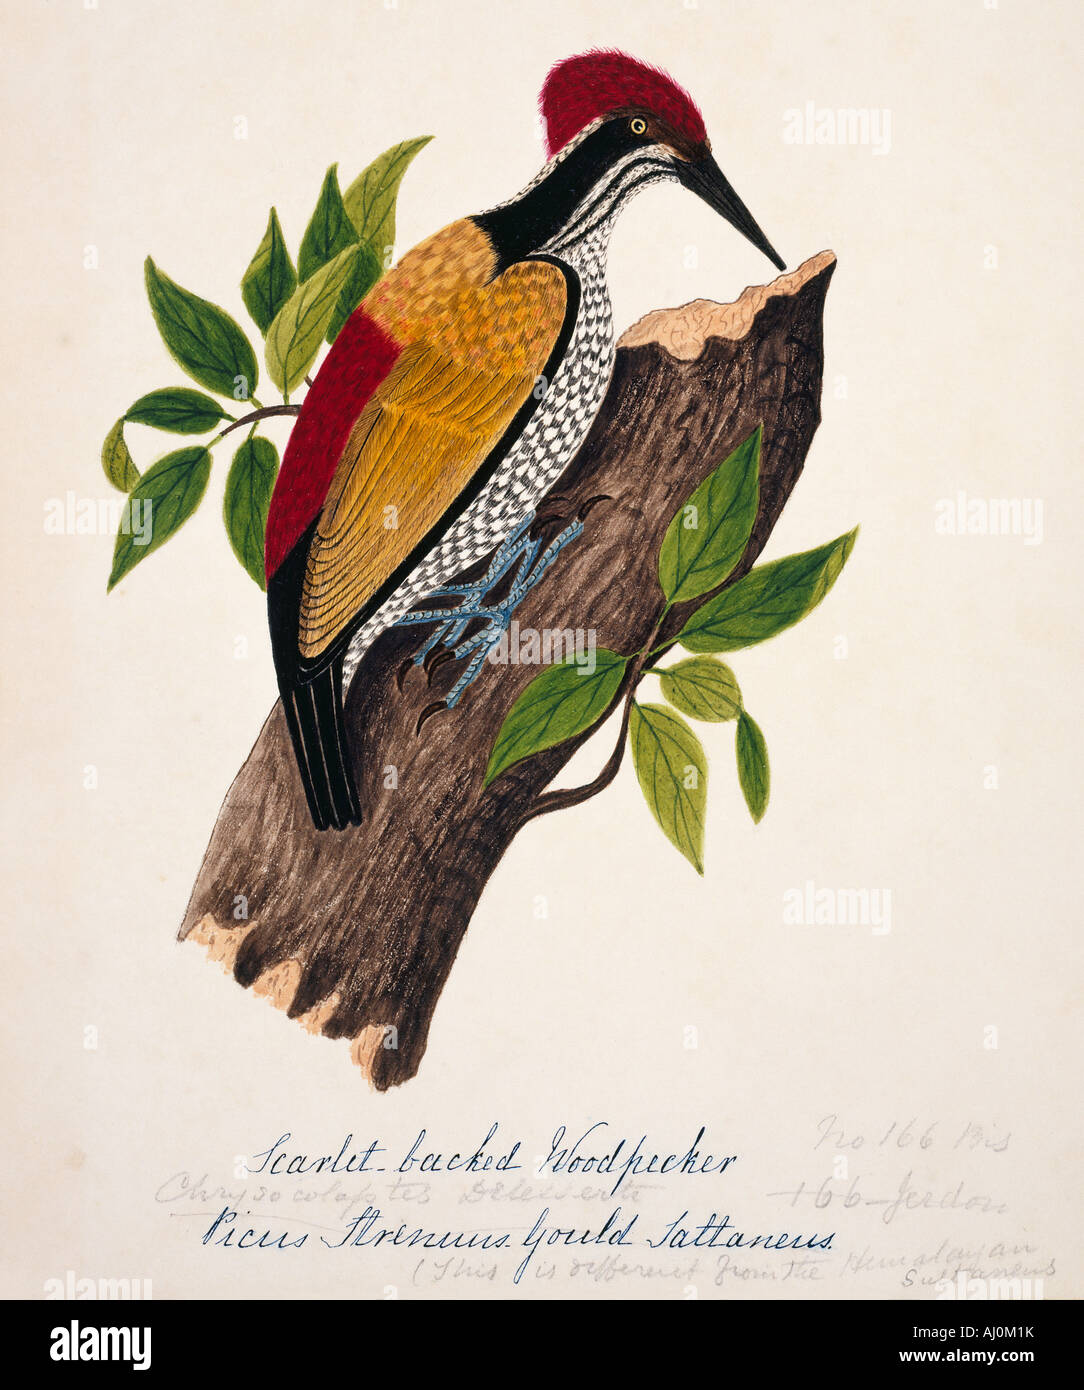 Chrysocolaptes lucidus, greater flame-backed woodpecker - Stock Image